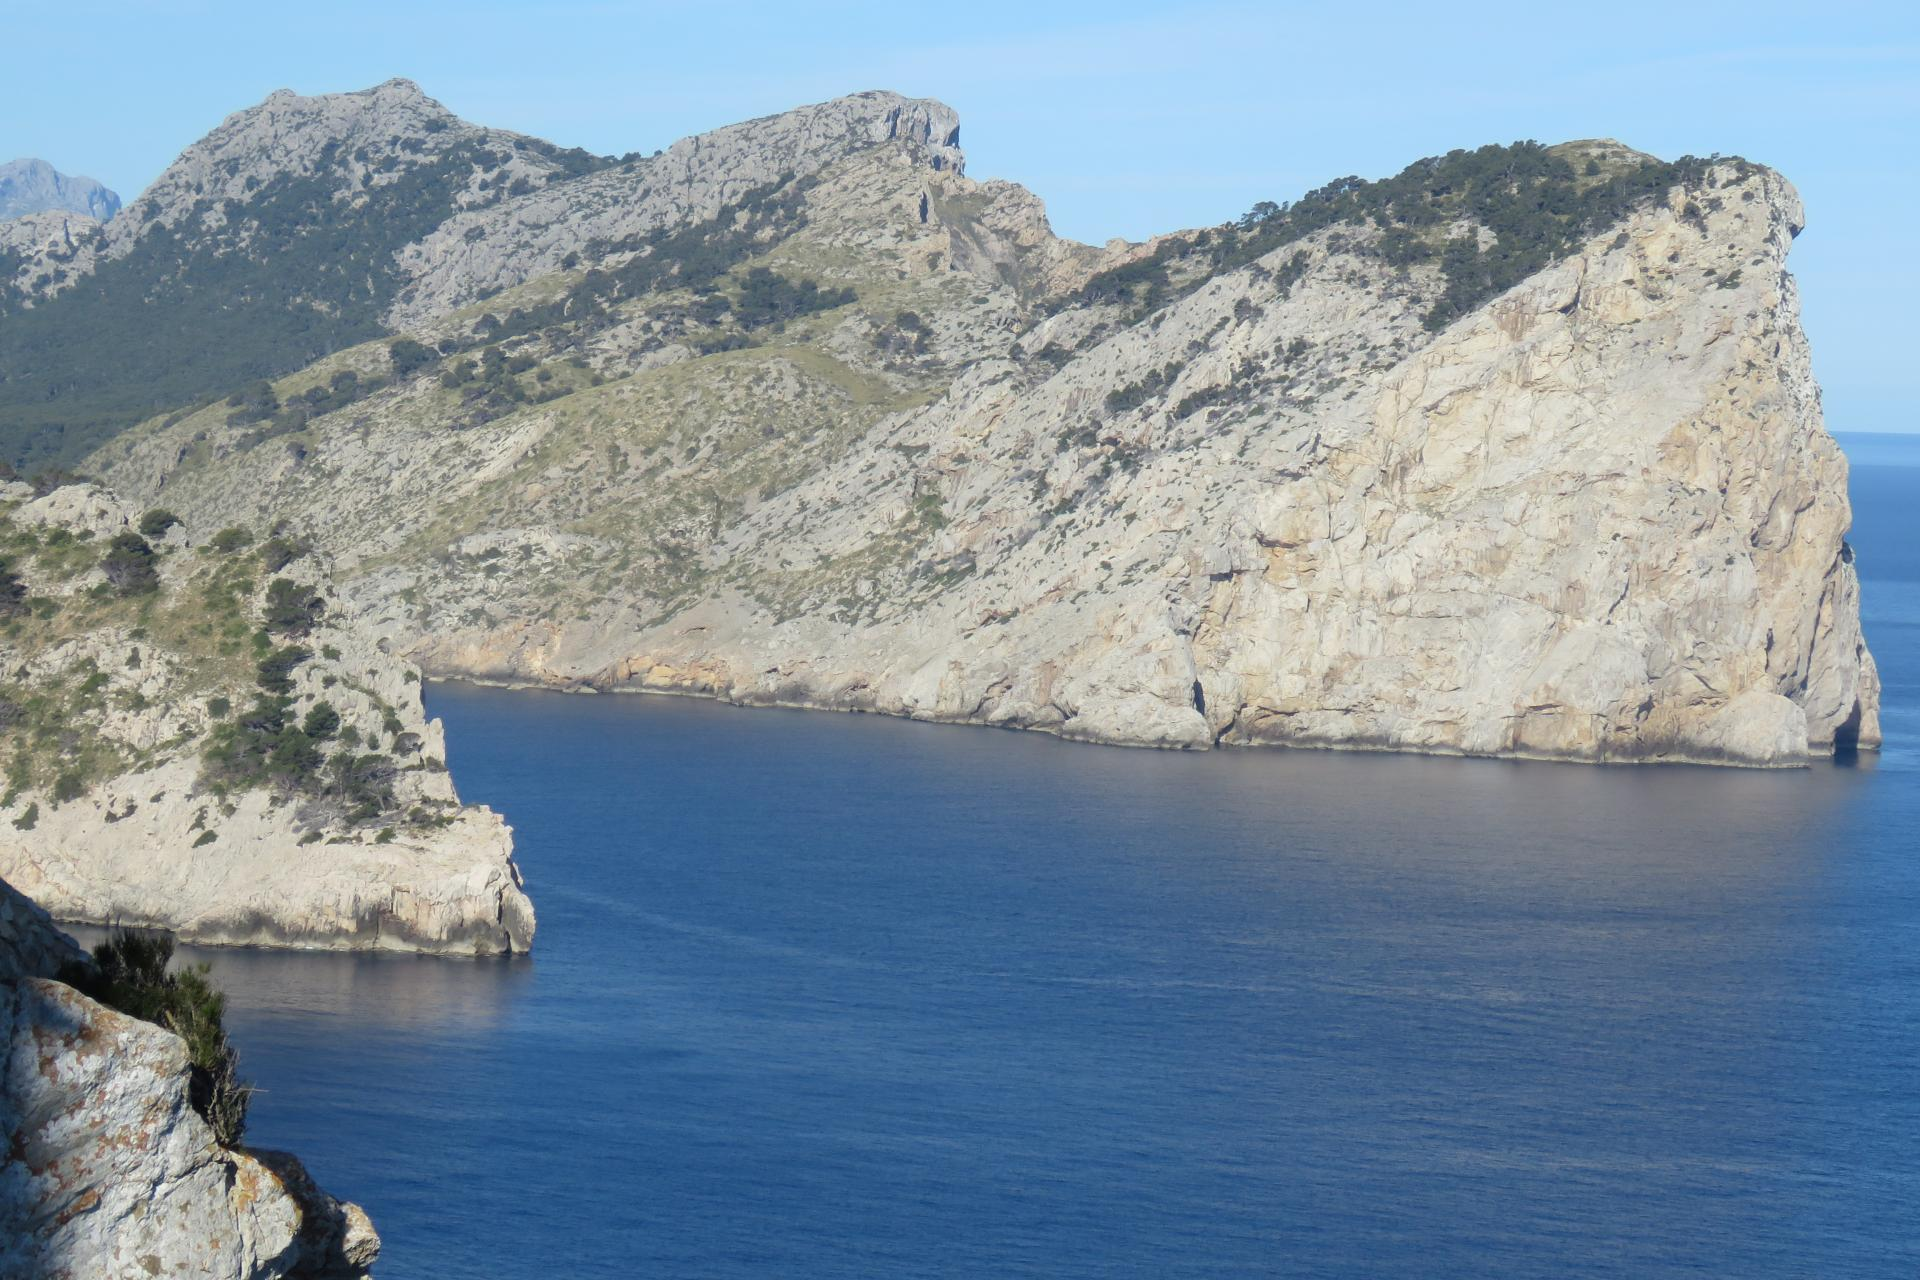 Cliffs of Formentor - typical nesting sites